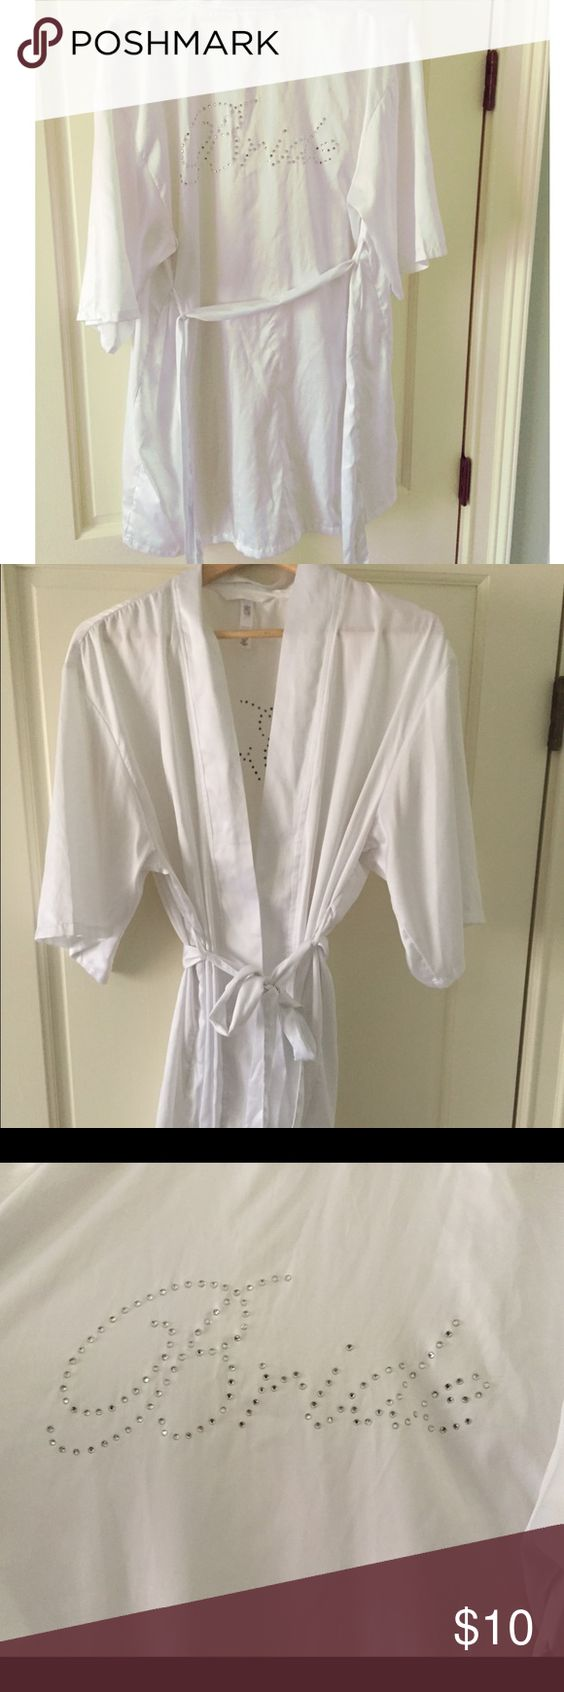 "Bride robe with blinged out ""Bride"" Hits above knees, soft silky robe, perfect for getting ready on any bride's big day! Also perfect for bachelorette weekend! Worn once while getting ready before wedding. Gilligan & O'Malley Intimates & Sleepwear Robes"